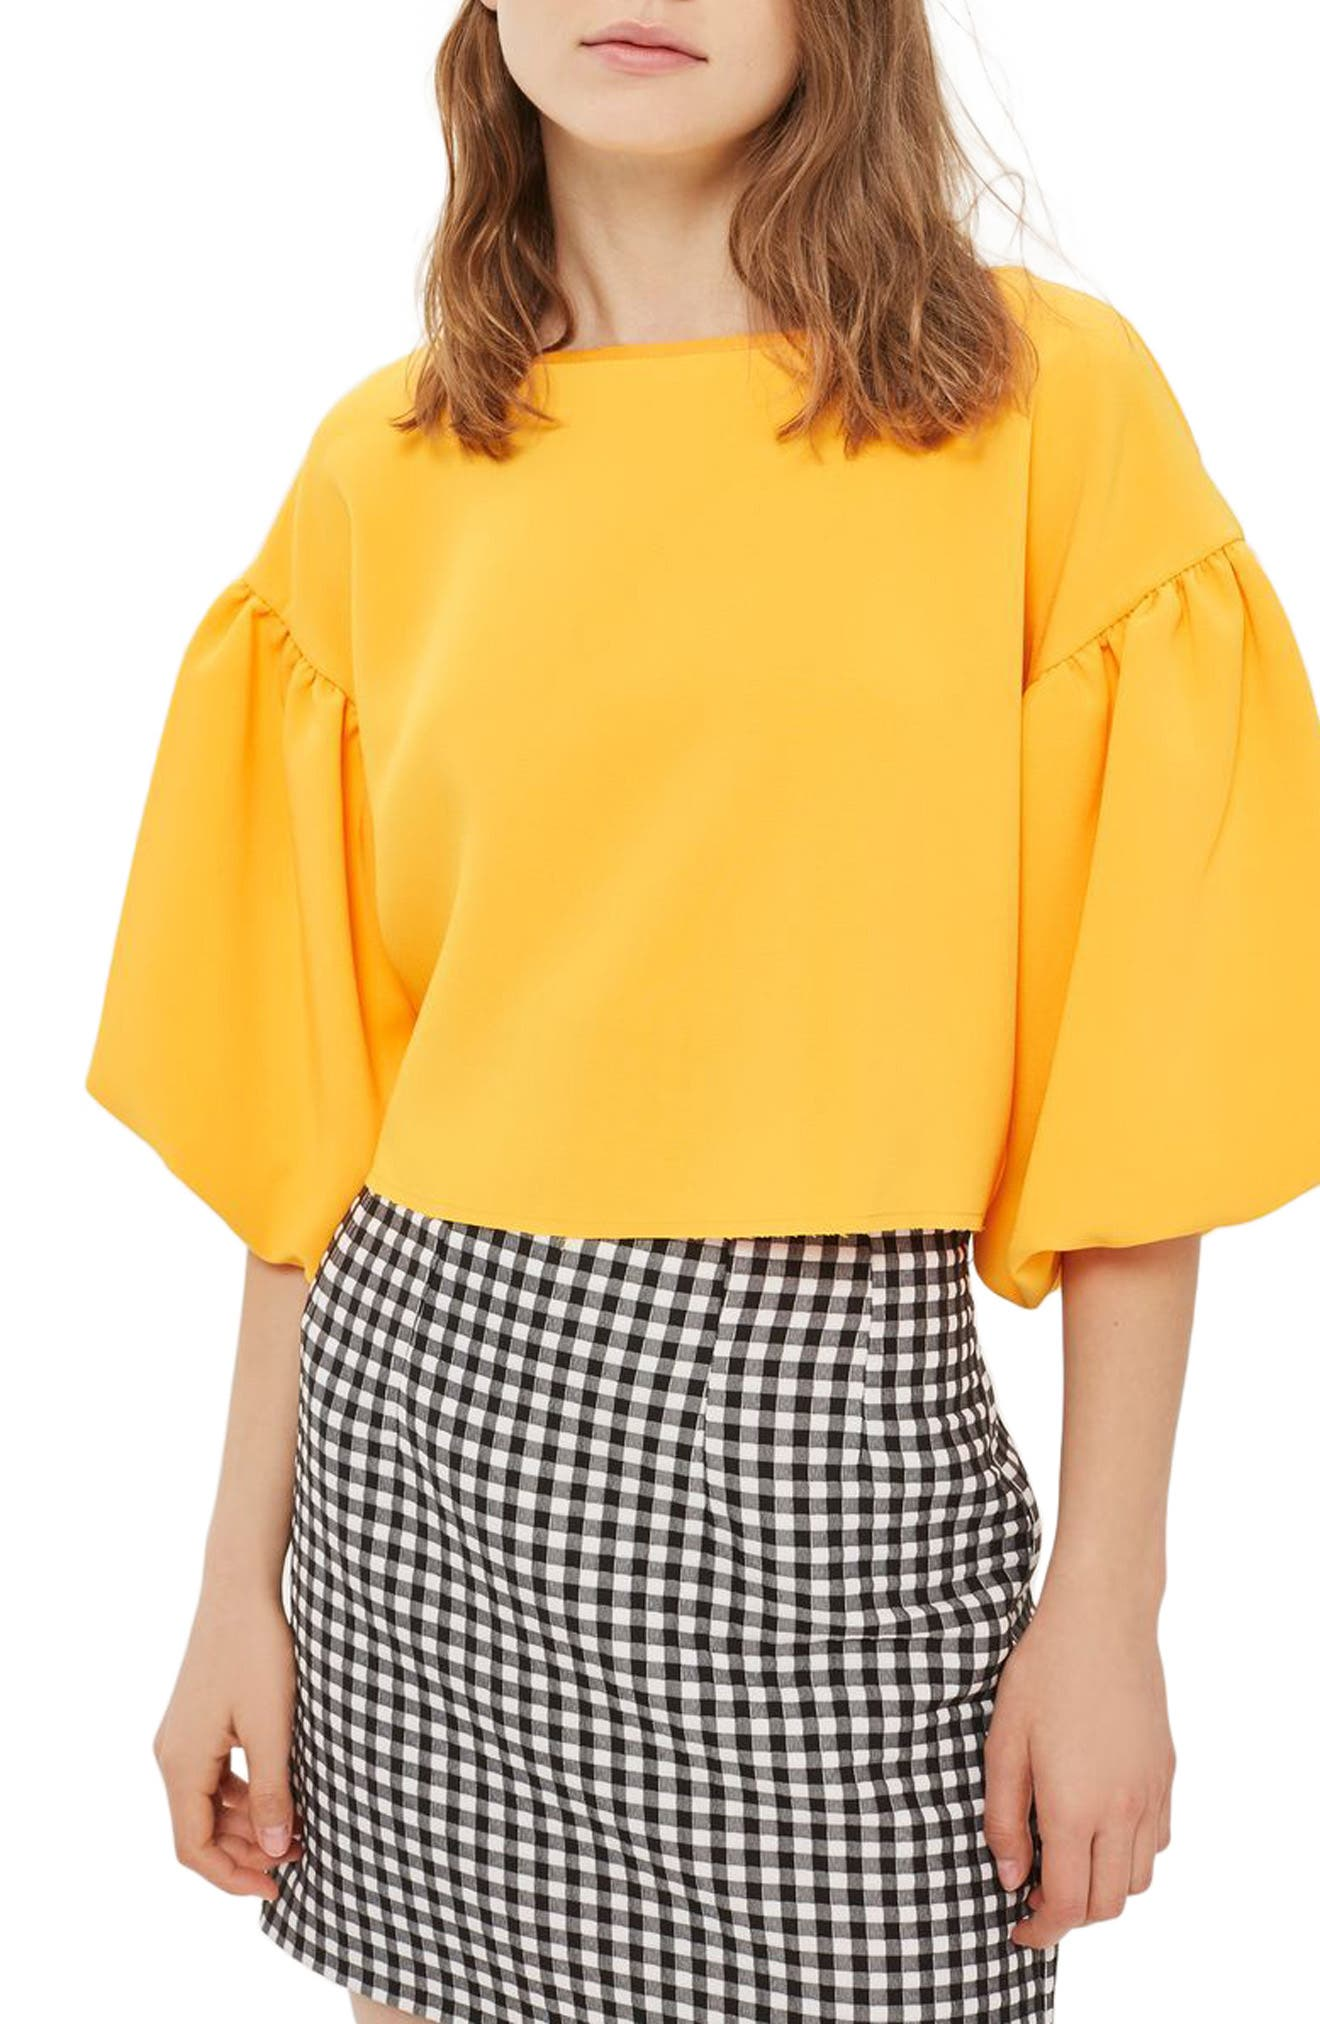 Topshop Puff Sleeve Top